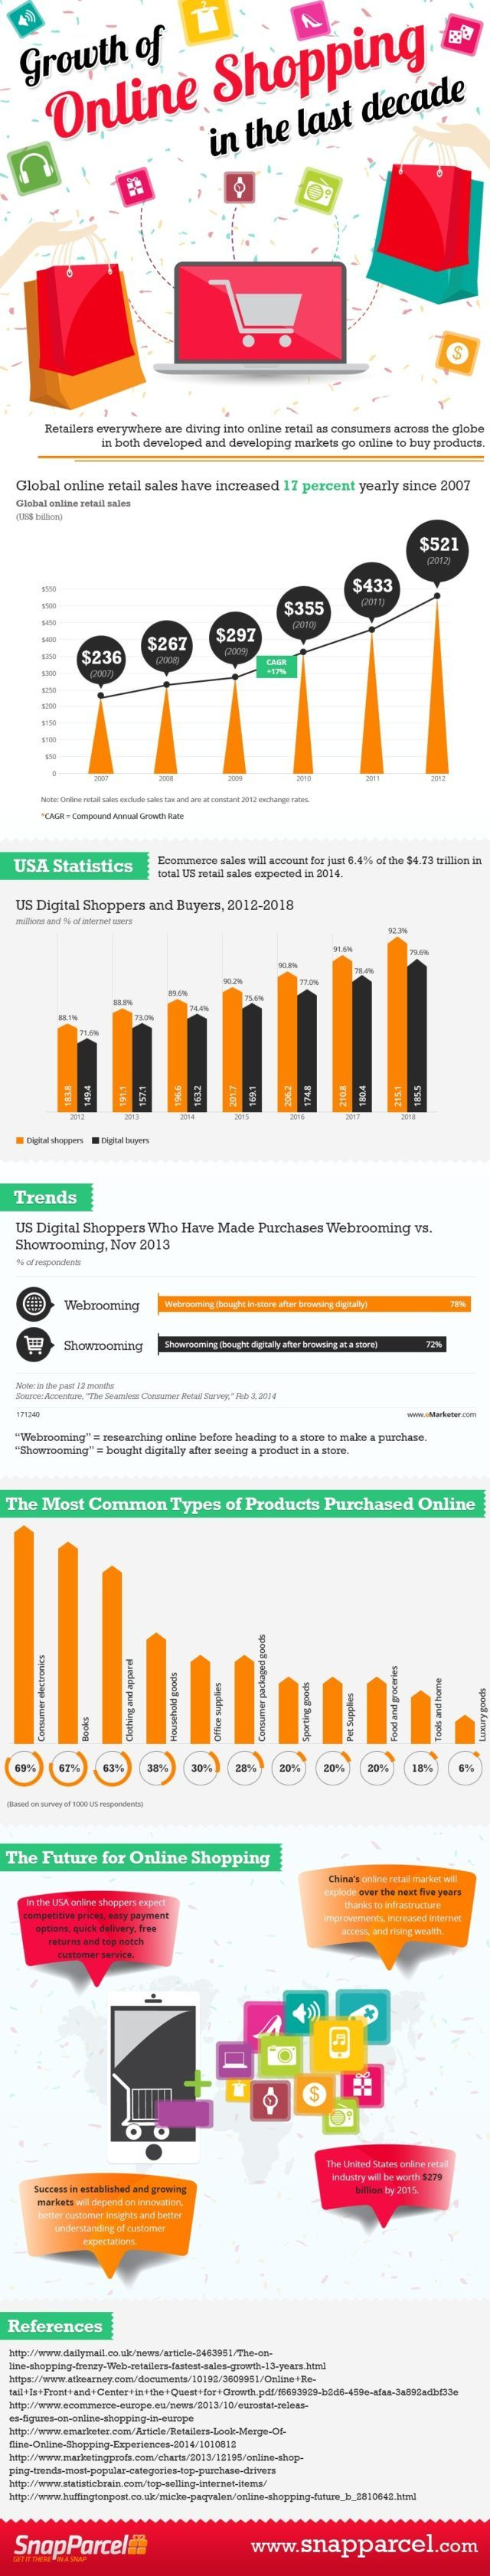 online-shopping-growth-infographic